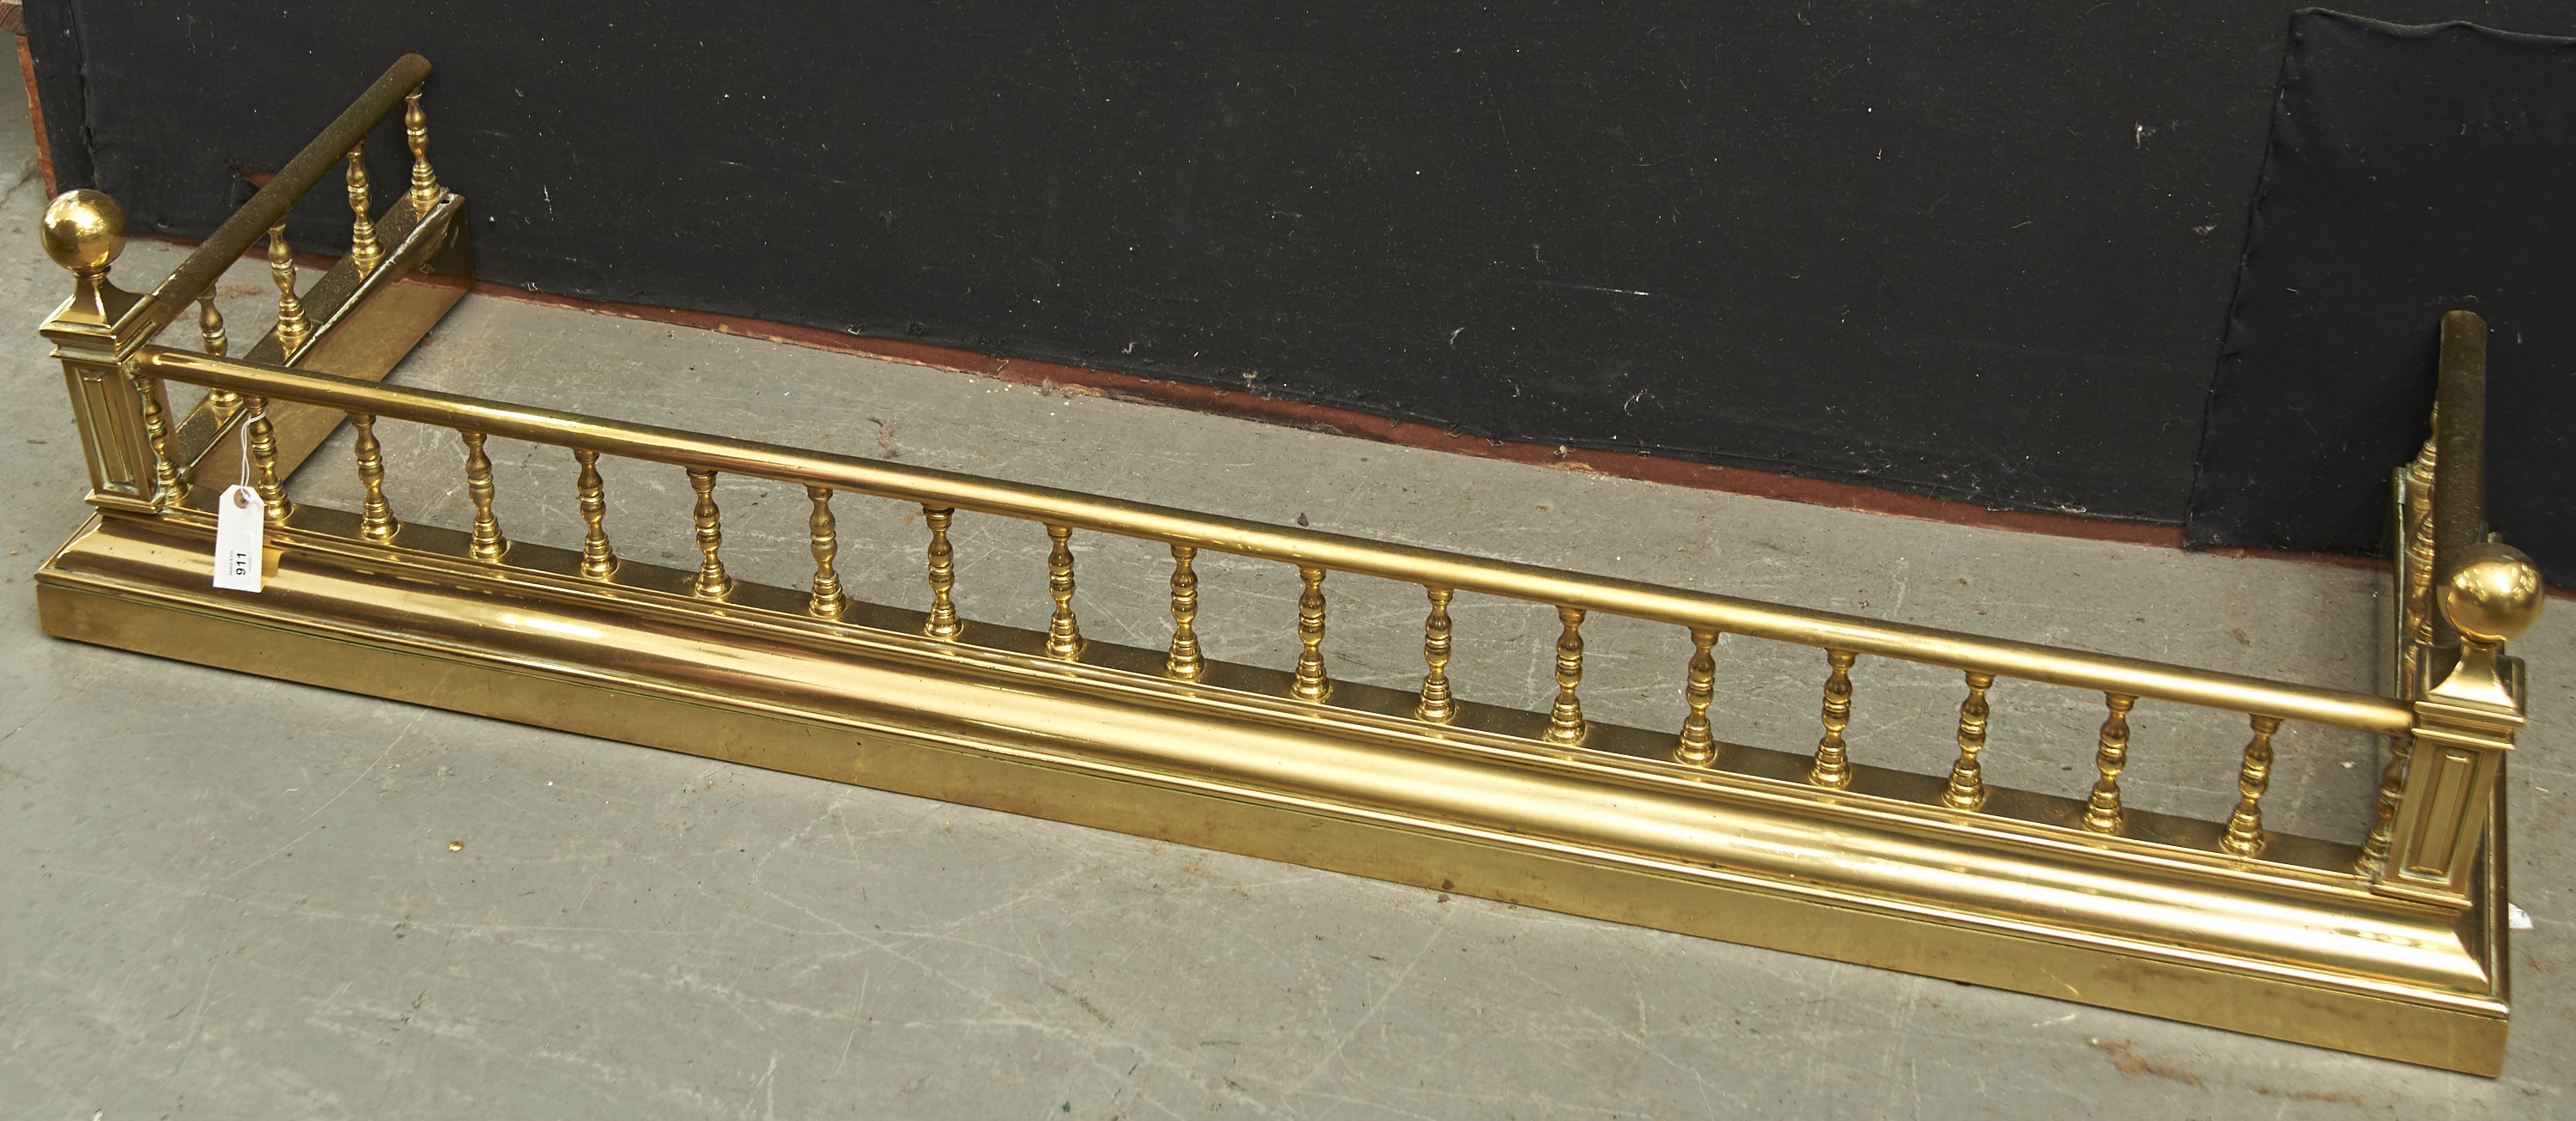 A VICTORIAN BRASS FENDER, C1880, THE PANELLED SQUARE FRONT POSTS WITH BALL FINIALS, PILLAR GALLERIES